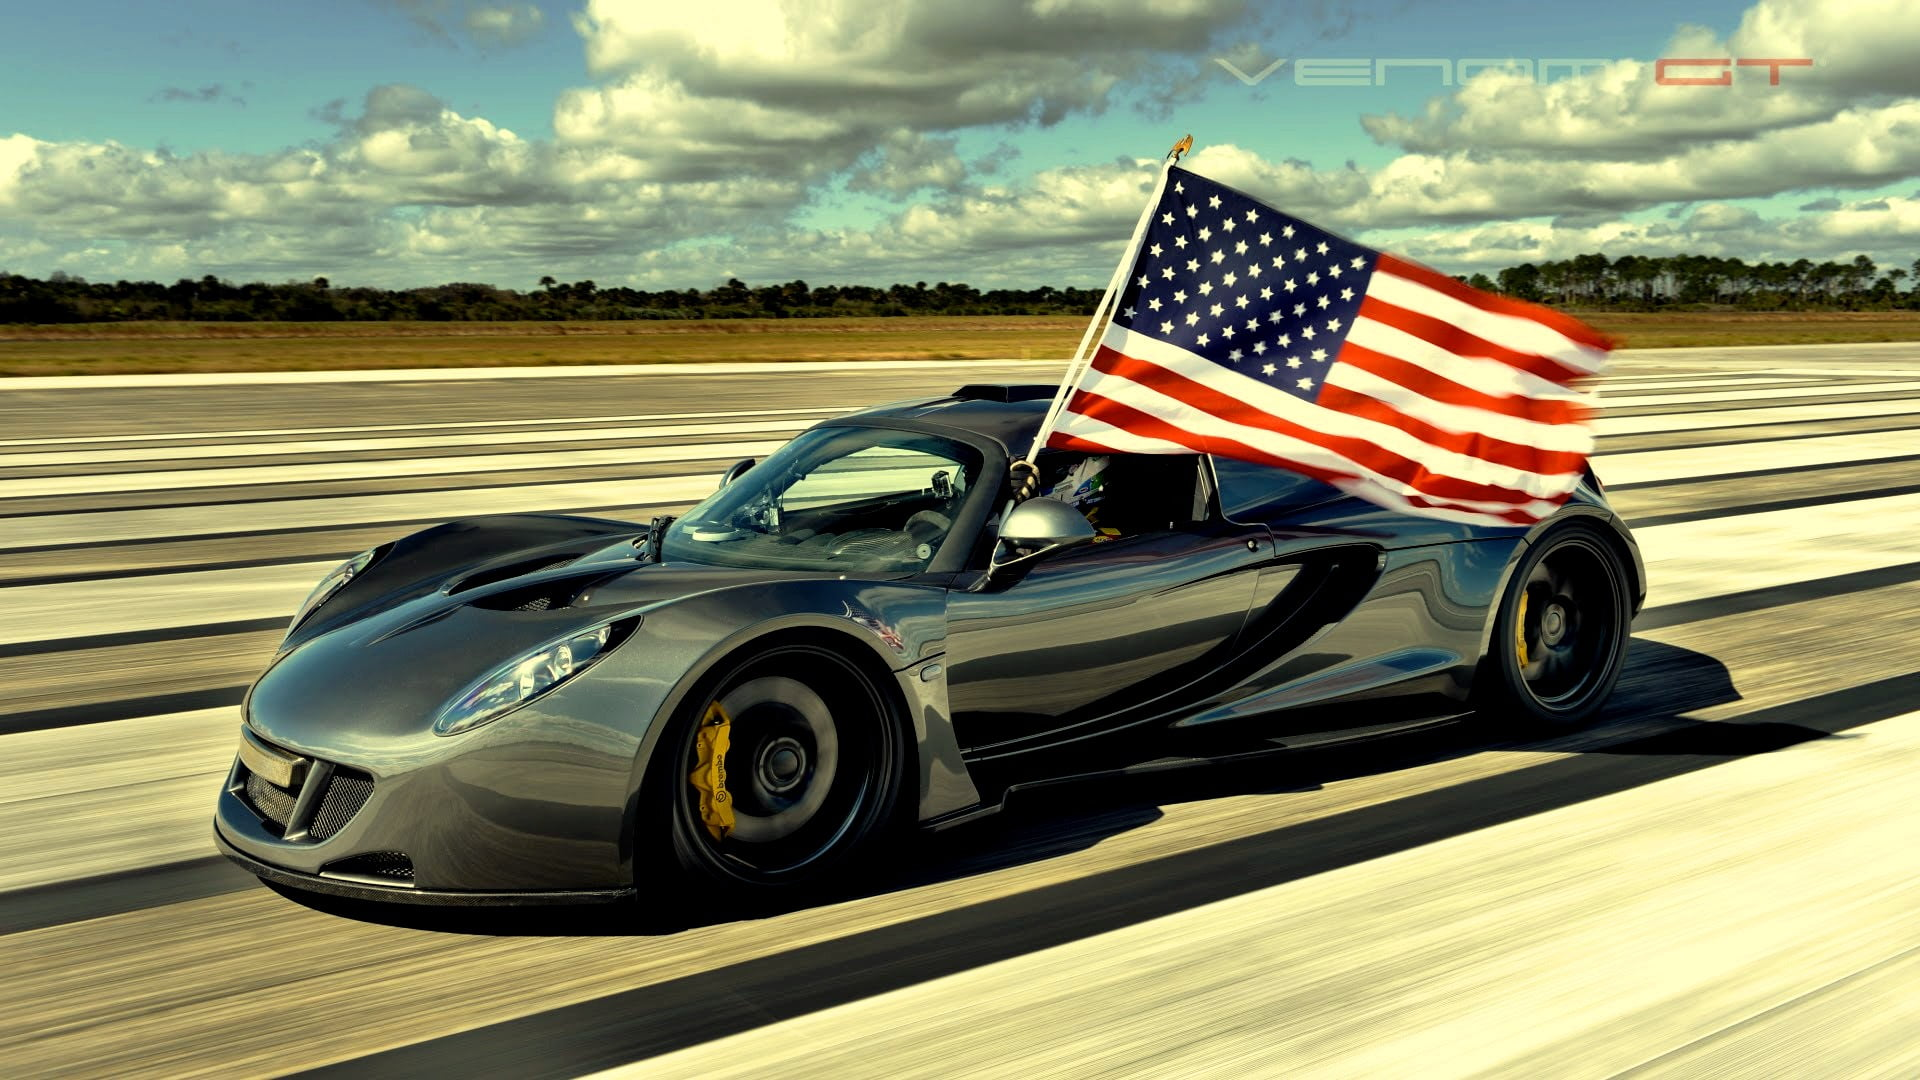 hennessey venom gt fastest car record. Black Bedroom Furniture Sets. Home Design Ideas